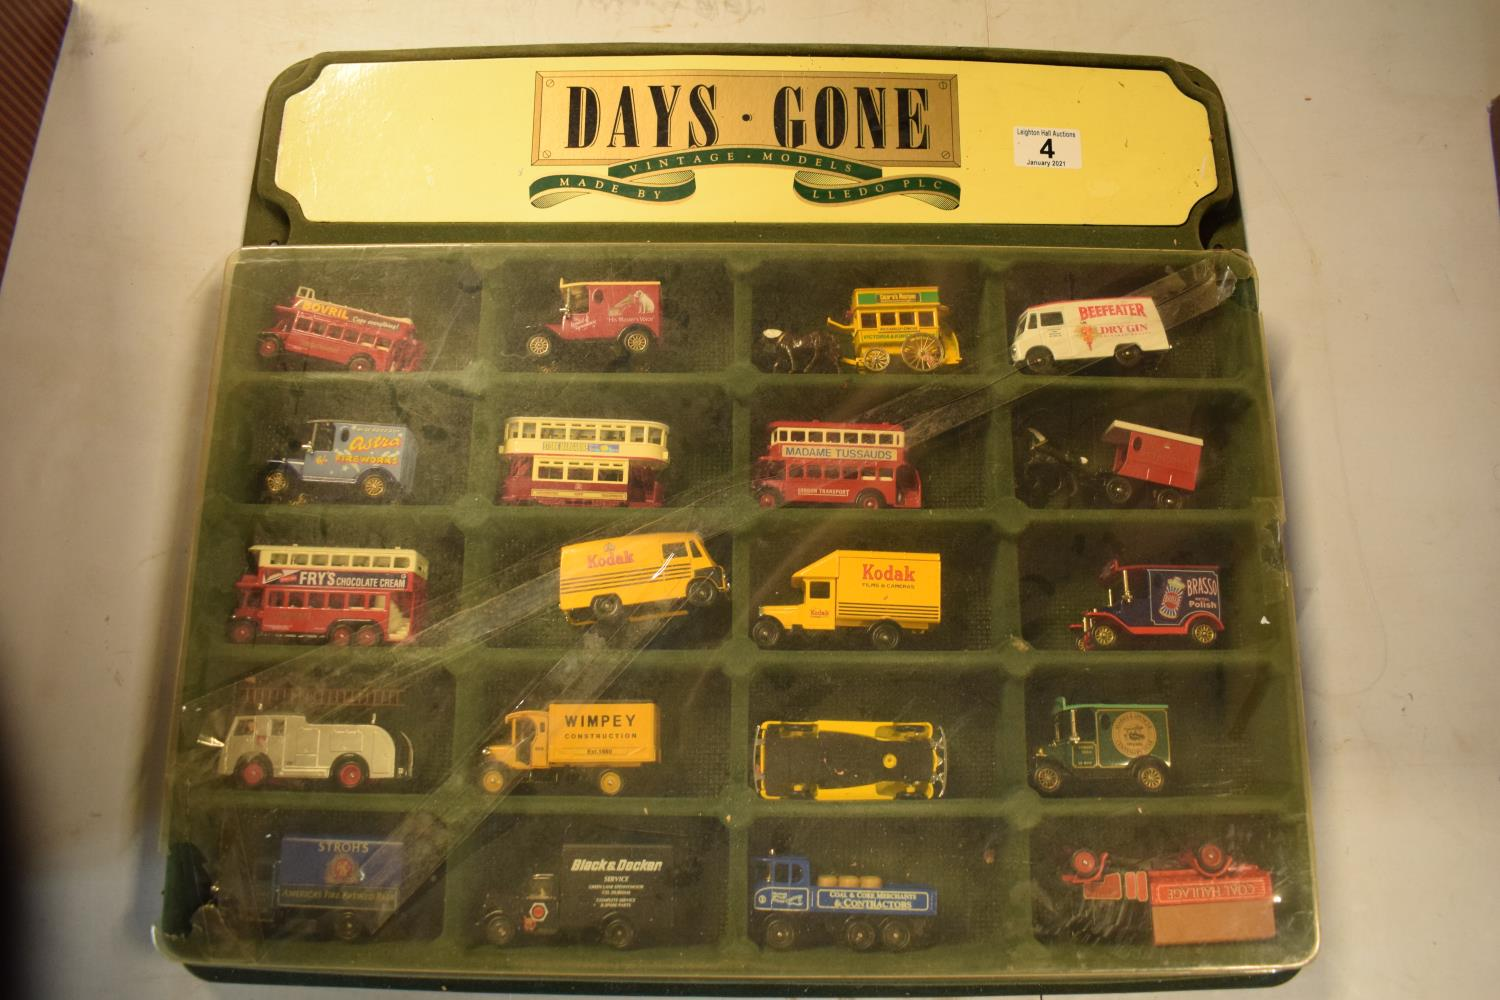 Days Gone /Lledo Vintage Models display unit together with 20 vehicles (21). Felt on display has